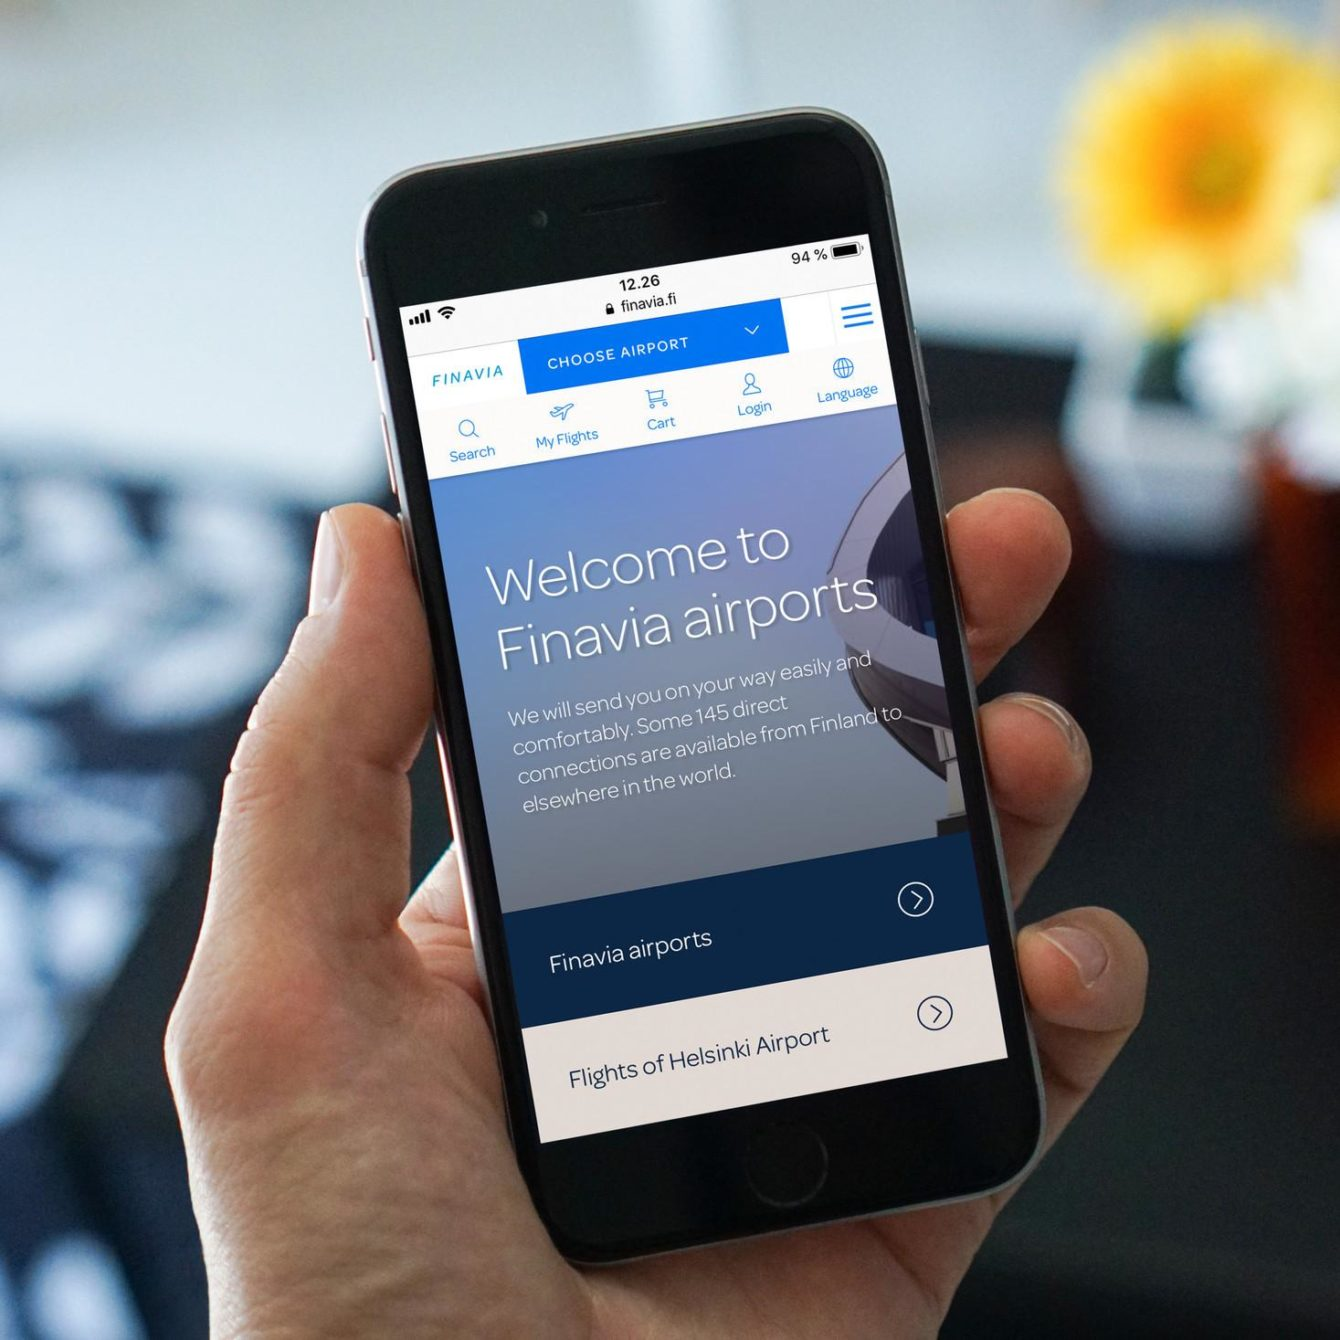 Finavia webservice open on a mobile device